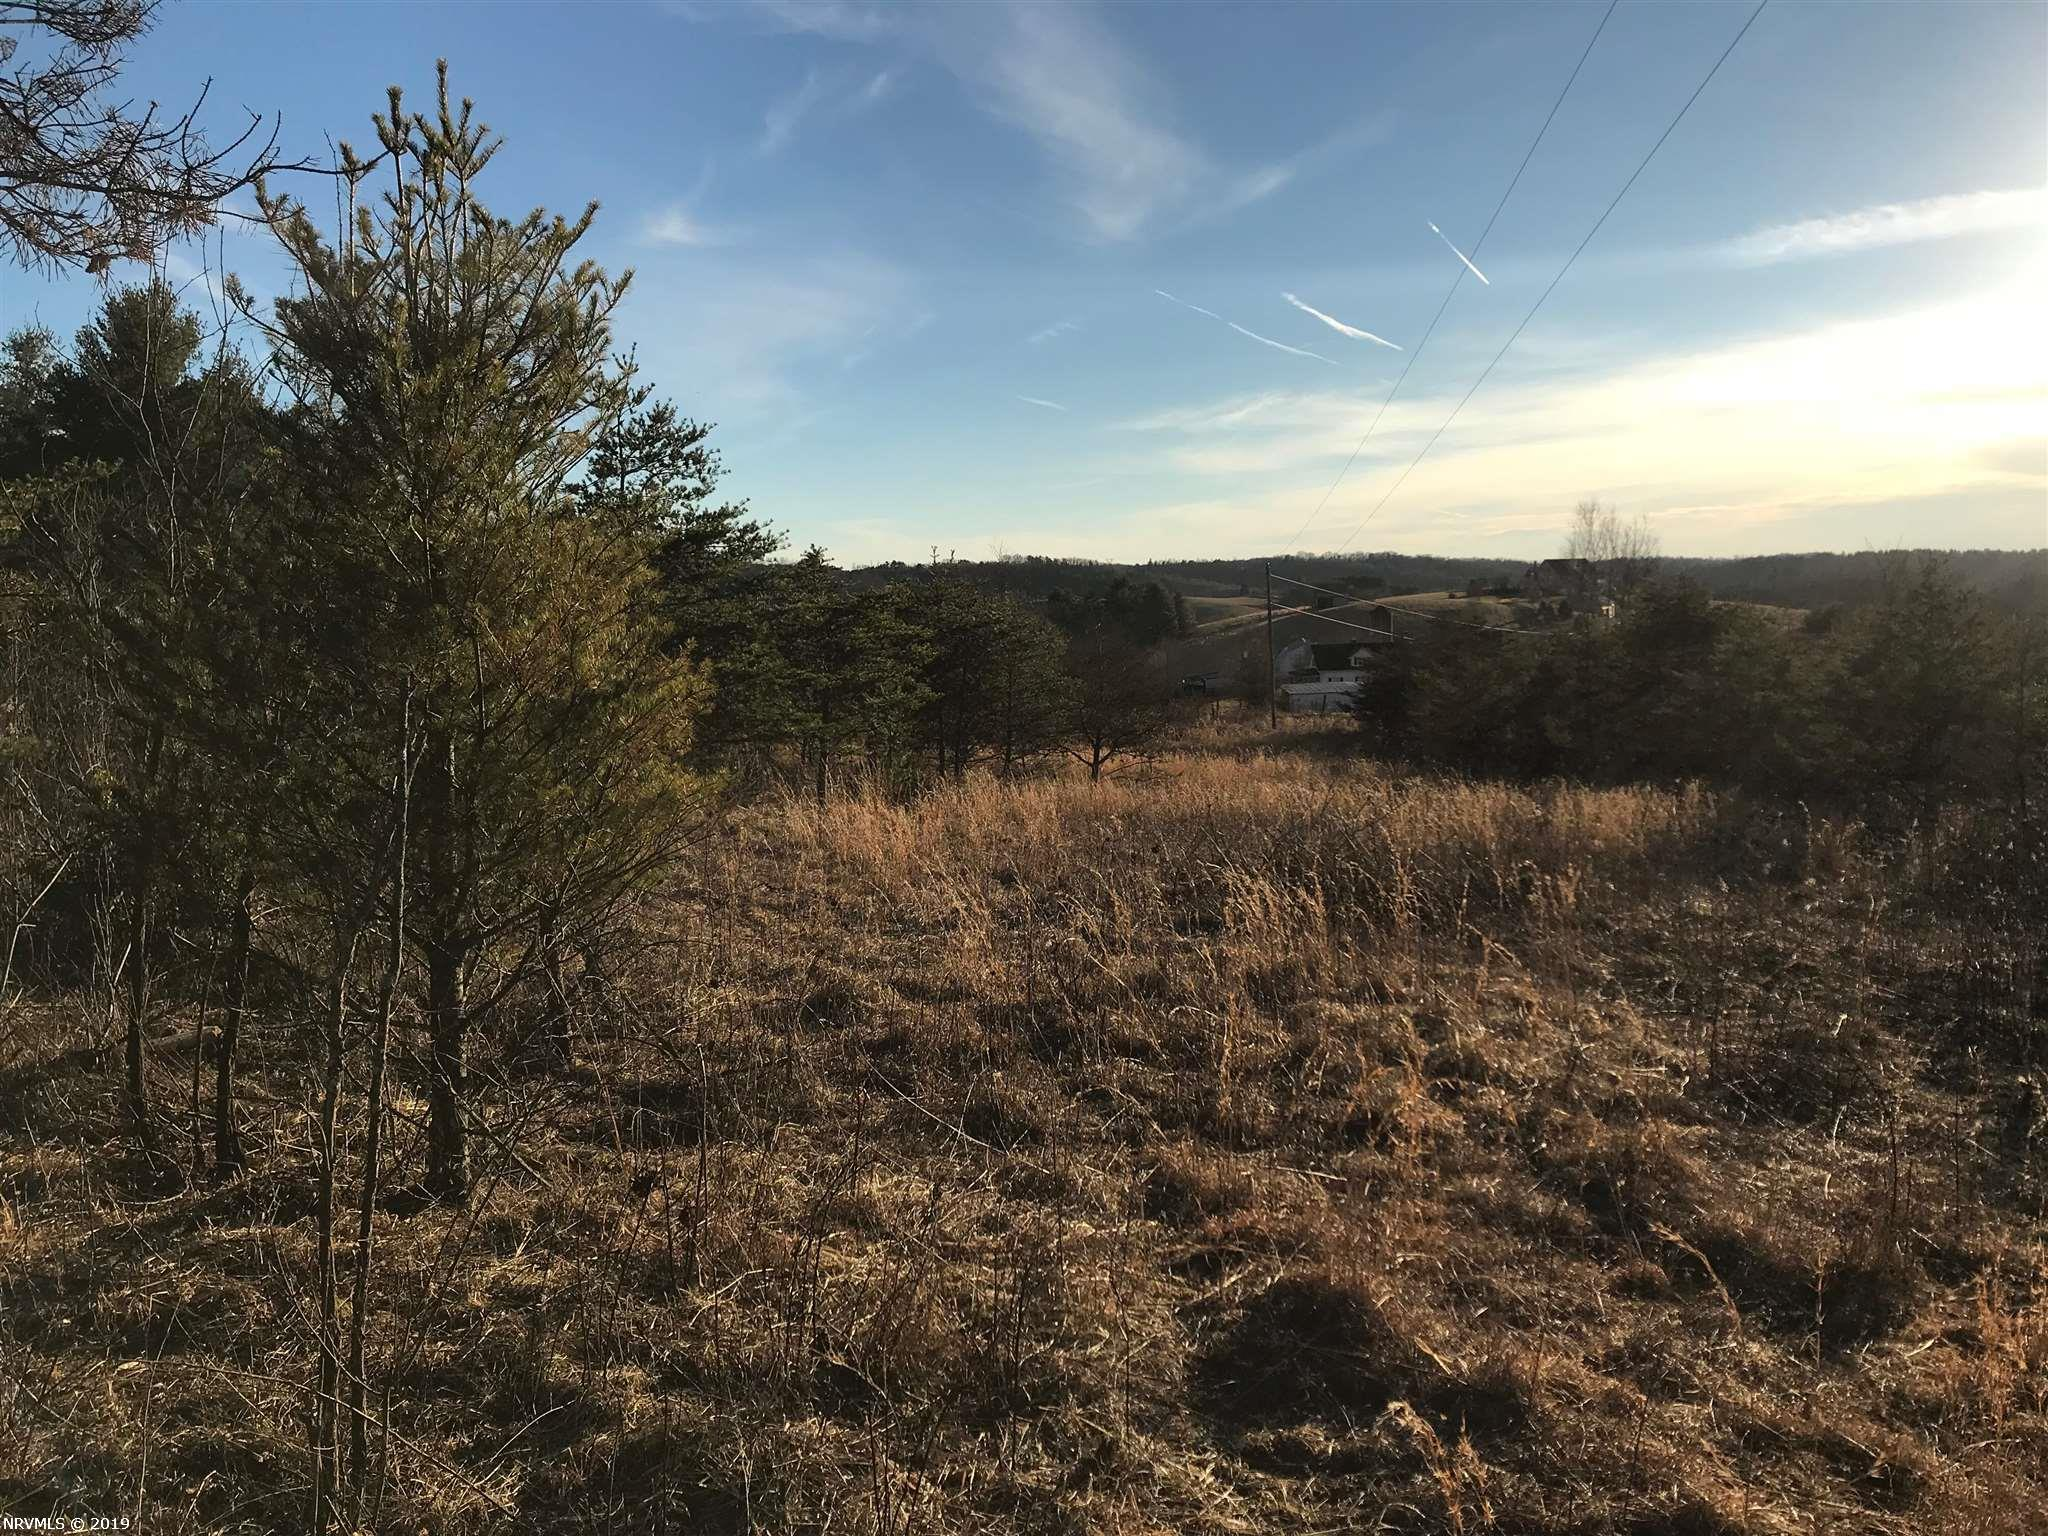 Enjoy the beautiful sunsets from atop the ridge on this 39 acre property.  Originally farmland and later planted with Christmas trees this property offers ridge views, open area as well as wooded land.  A spring head begins in the valley and meets with another stream.  Pines were tipped this past fall.  With some imagination the possibilities with this land are unlimited.  Property offers building sites, hunting and recreational opportunities.   The opportunity exist to have road frontage on both Indian Valley Post Office Rd as well as Windy Ridge Rd.  An additional 31 acres can also be purchased adjacent to the 39 acre.  Property does have an older well maintained cemetery on premises.